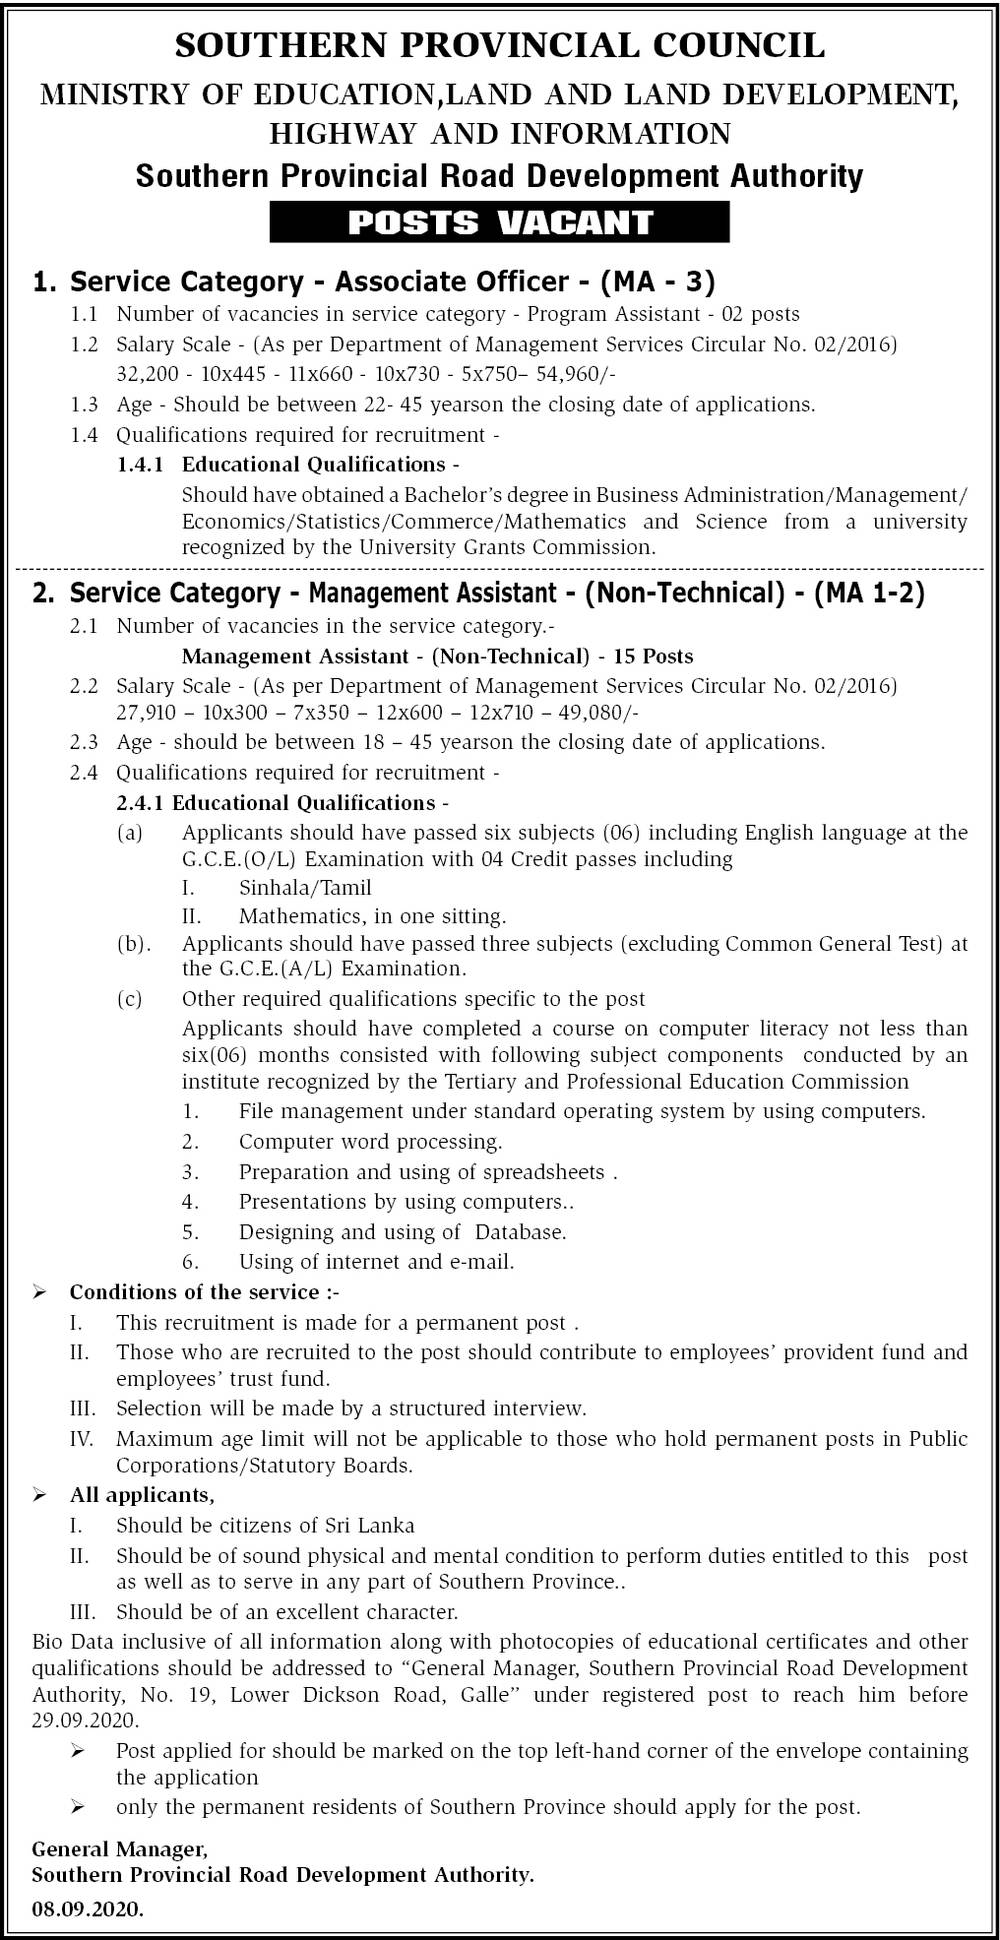 Management Assistant, Associate Officer - Southern Provincial Road Development Authority